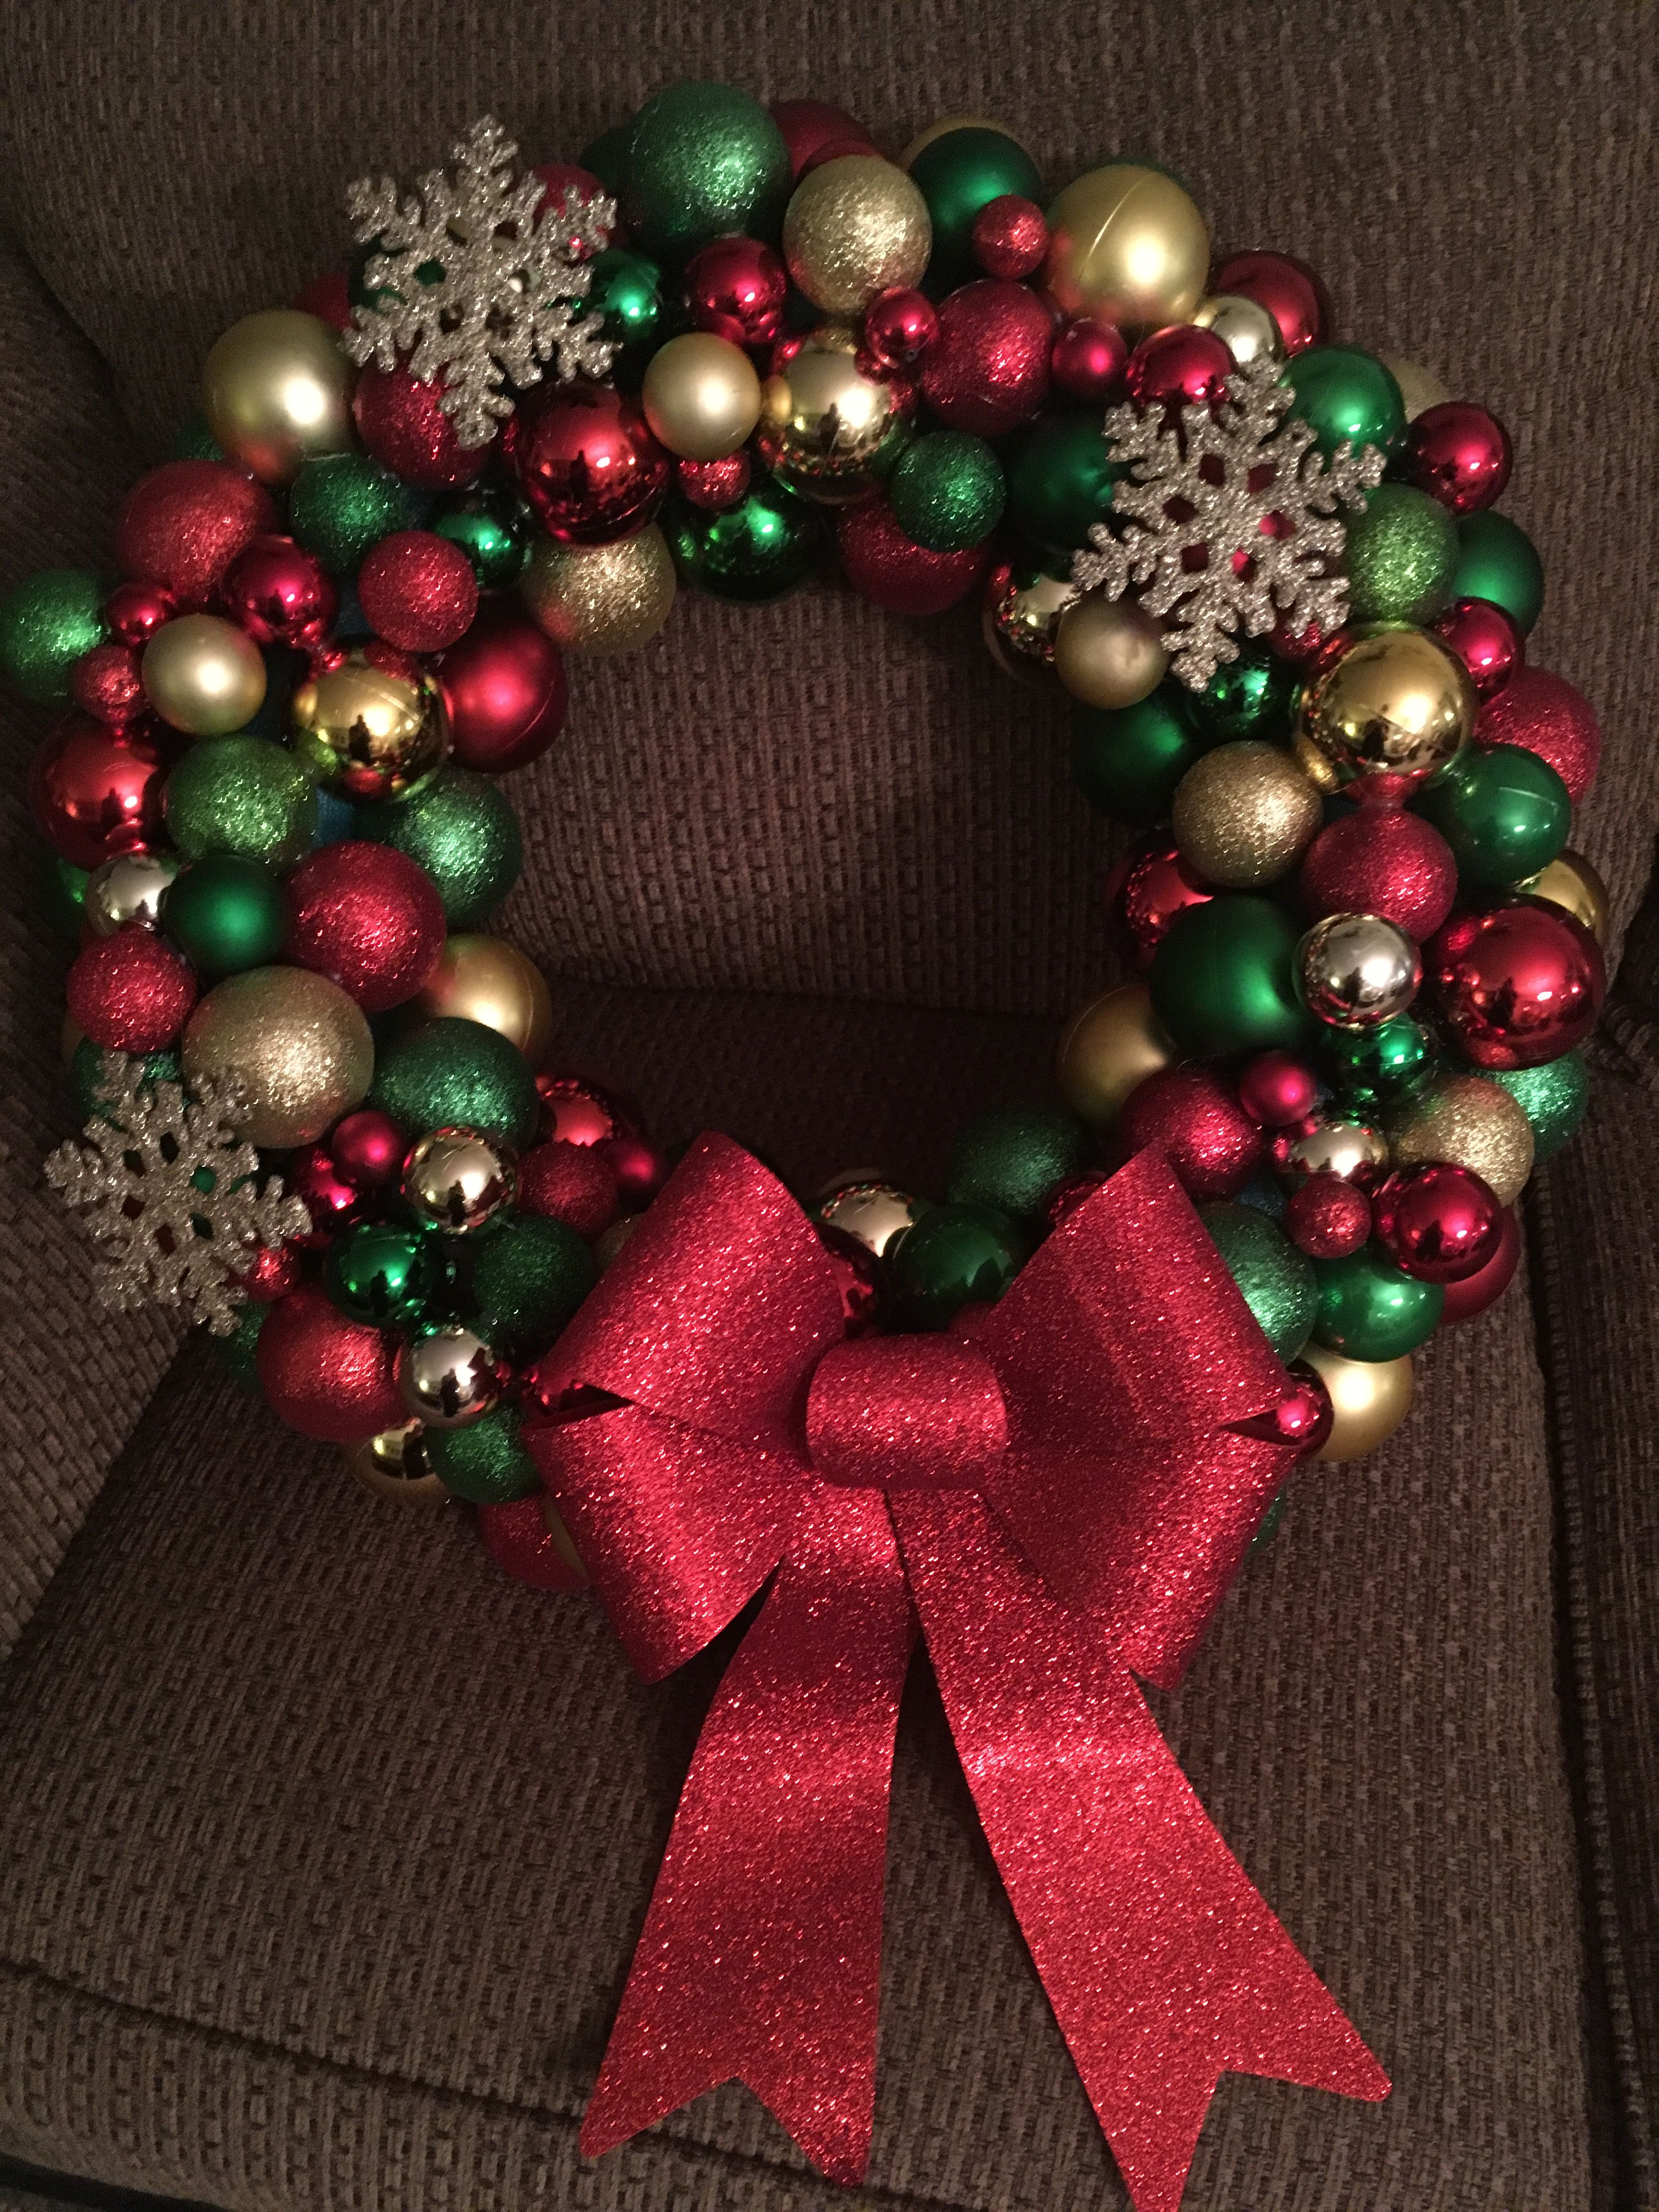 DIY Christmas ball wreath using a pool noodle and